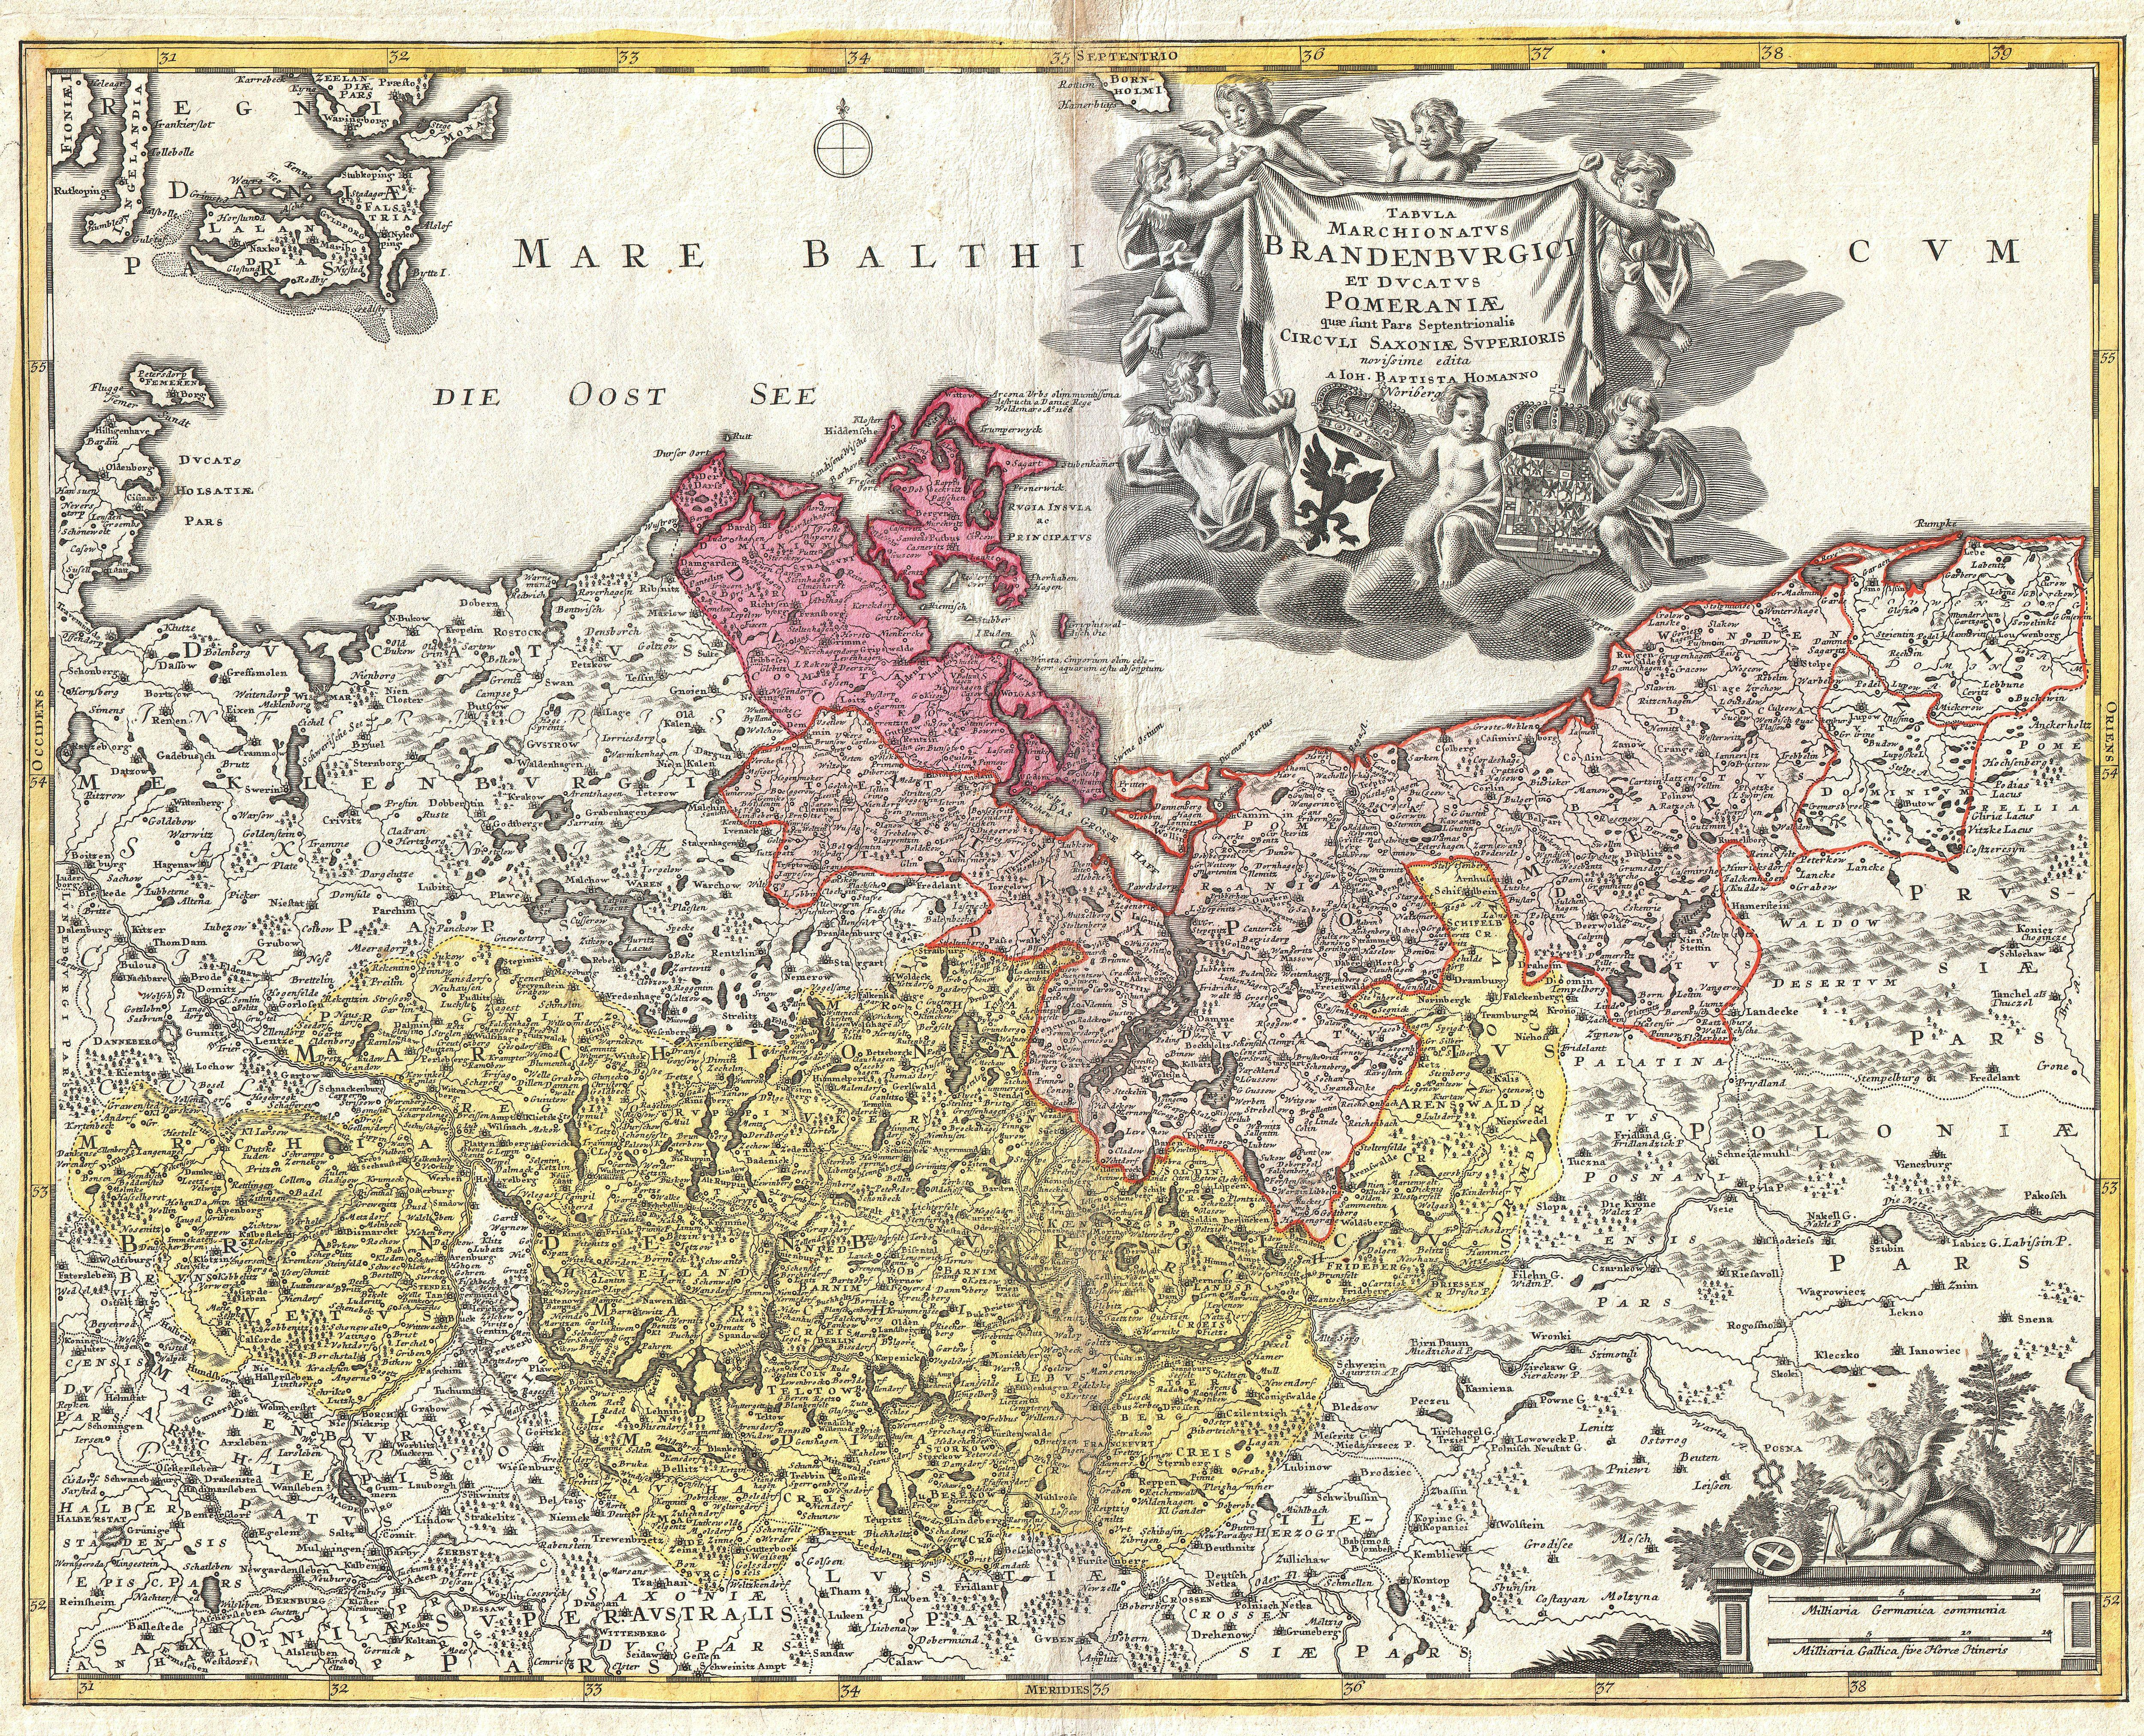 File:1720 Homann Map of Brandenberg and Pomerania, Germany - Geographicus -  Brandenburgici-